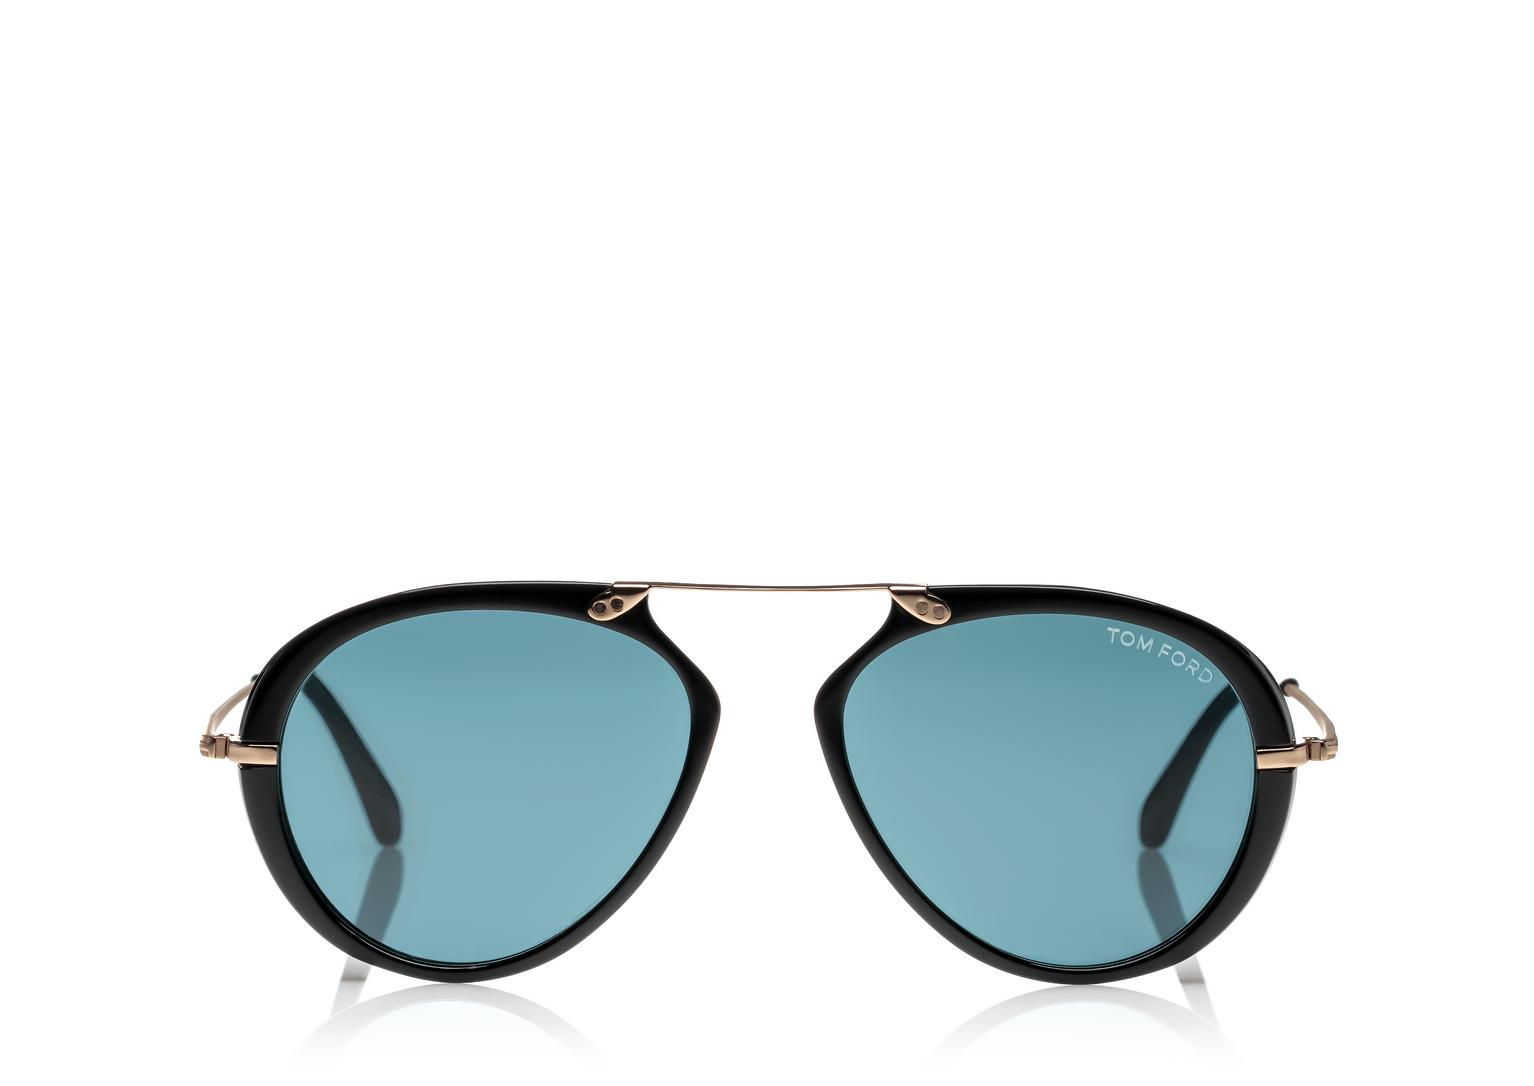 Source:http://www.tomford.com/aaron-sunglasses/FT0473.html?dwvar_FT0473_color=01V#start=1